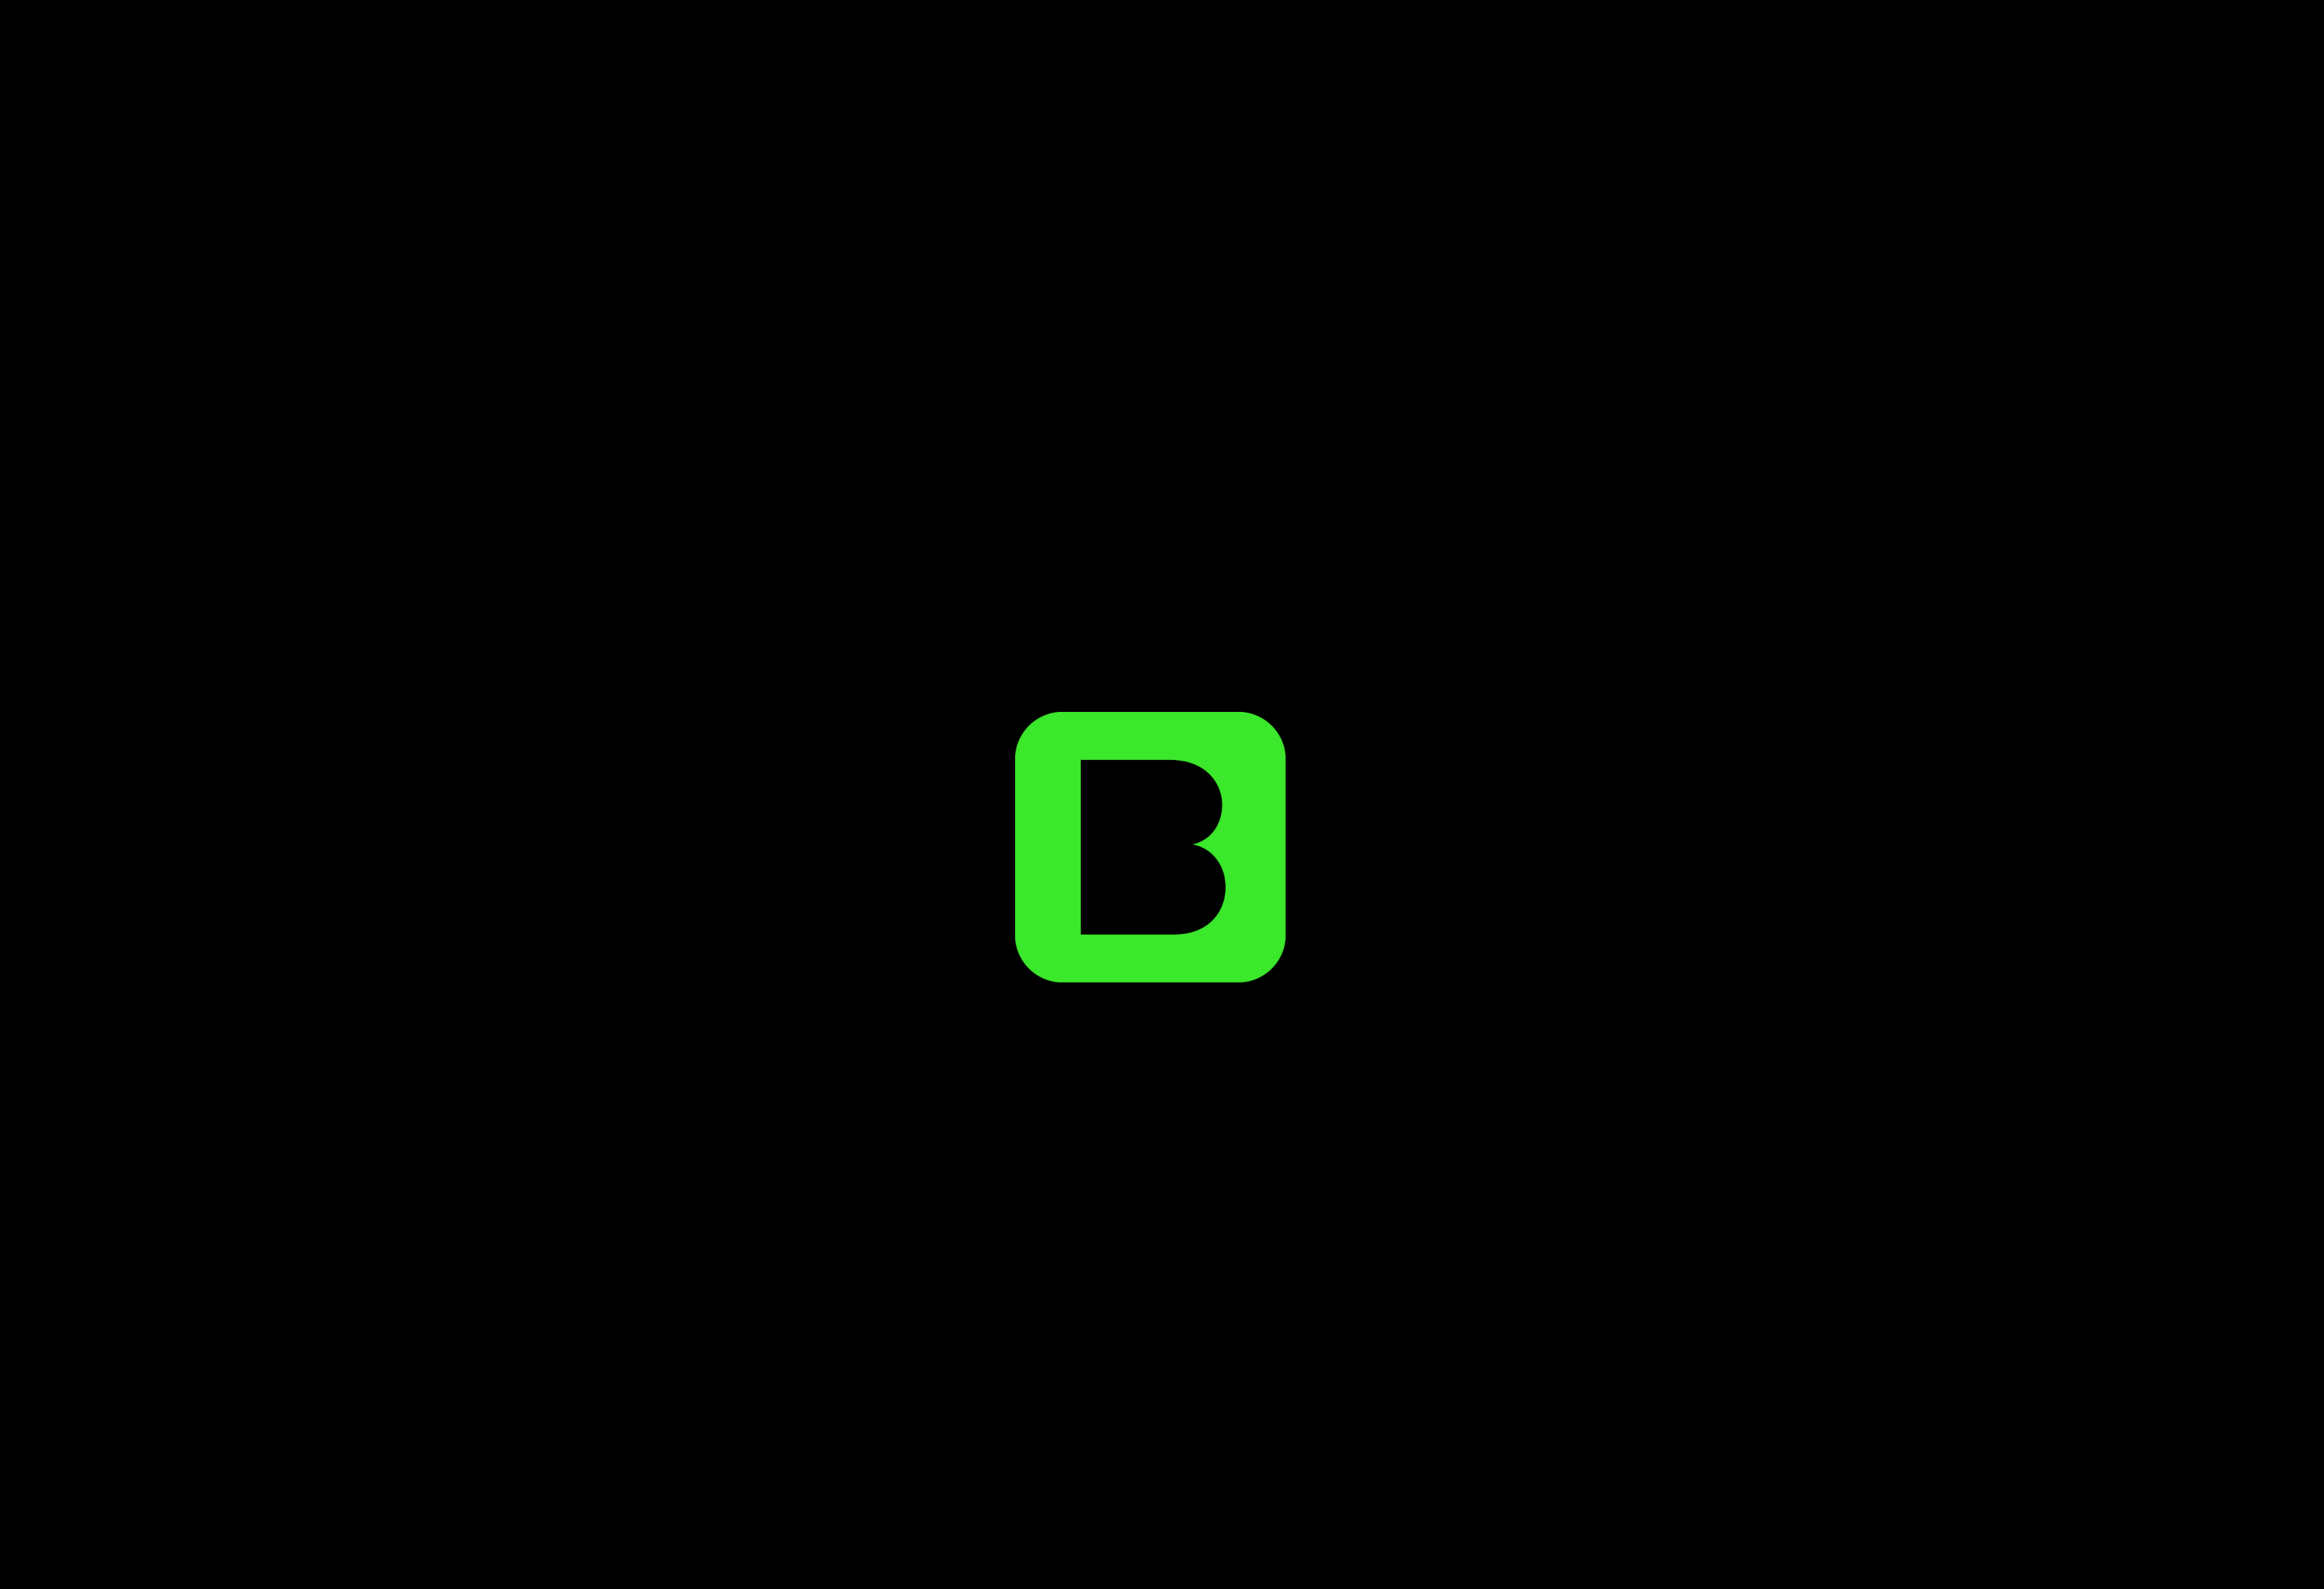 Replicating Beme's Proximity-Record in Swift